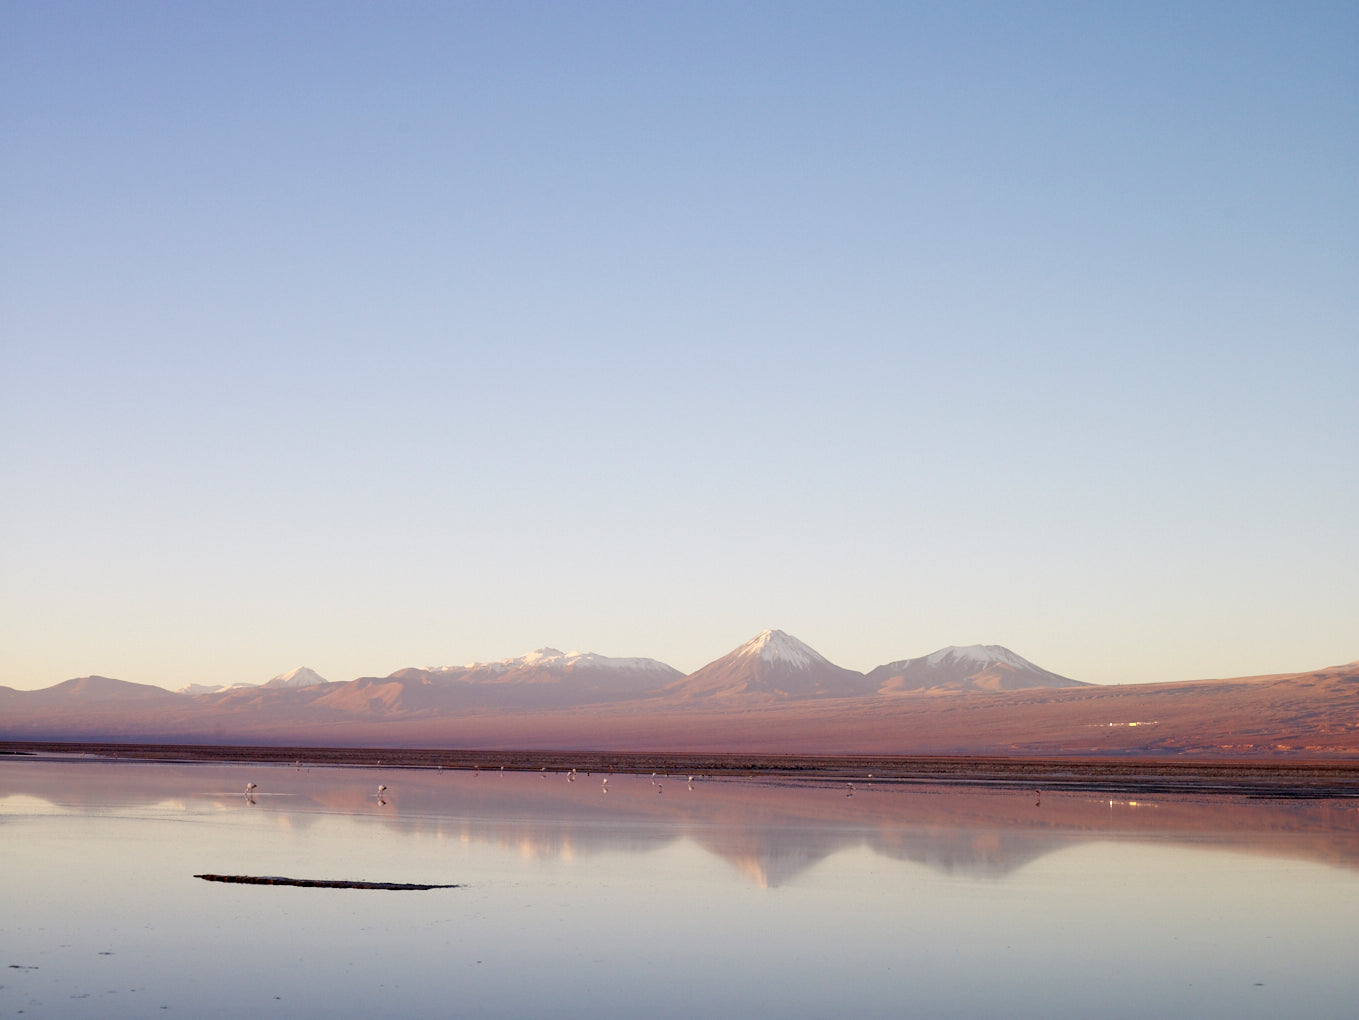 Flamingoes at dusk, Salar de Atacama, Chile